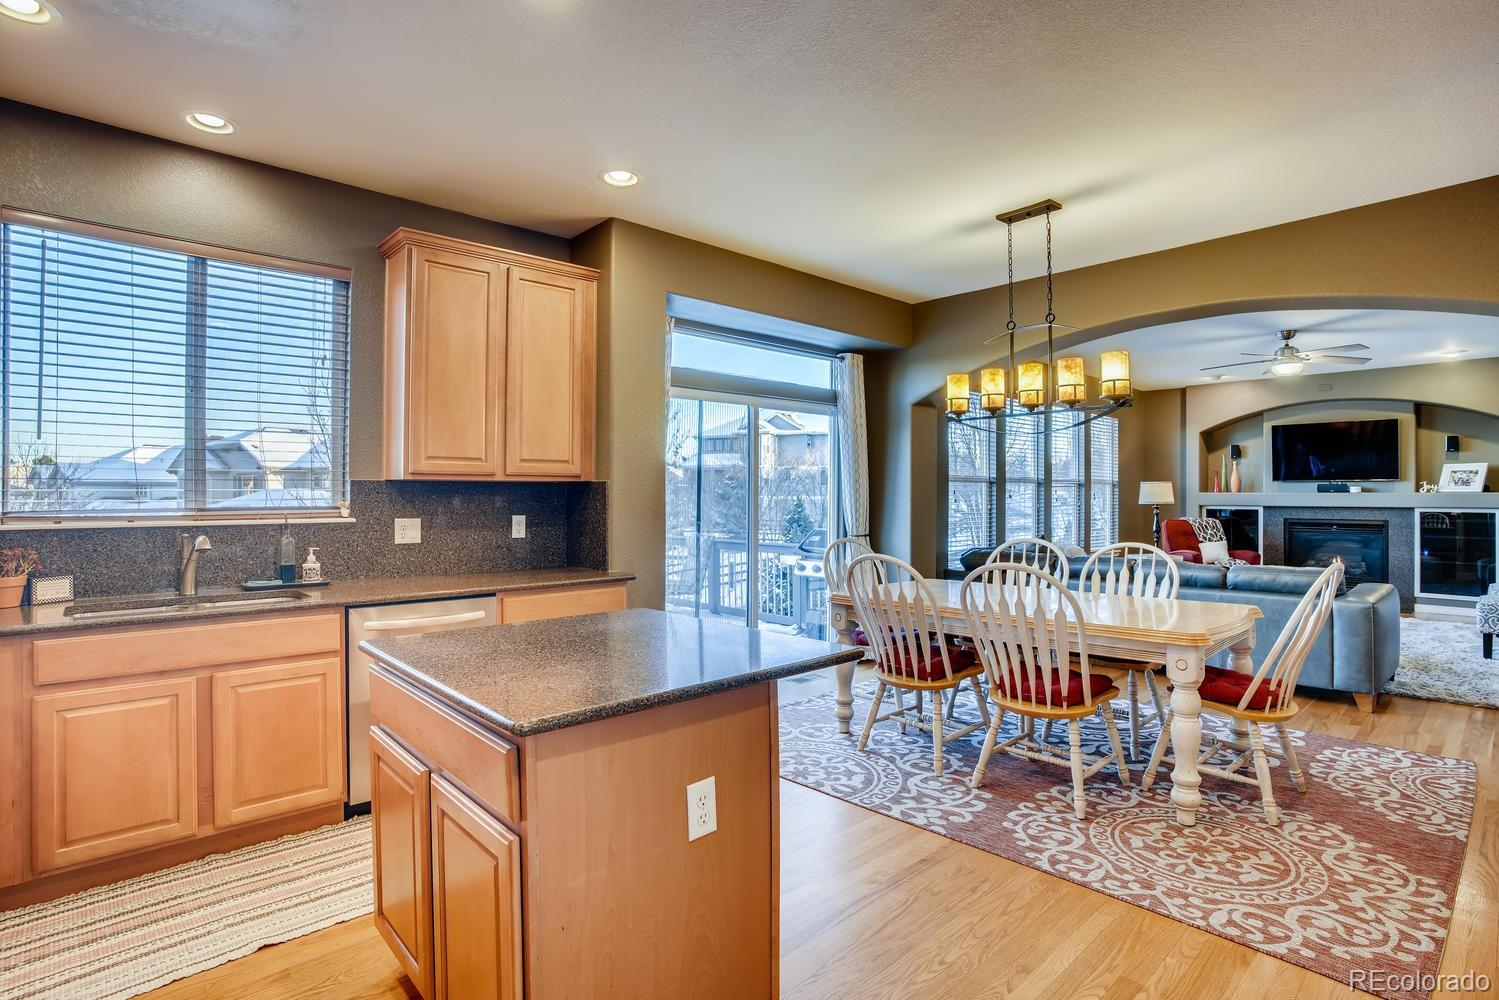 MLS# 5896845 - 8 - 6580 S Ames Court, Littleton, CO 80123